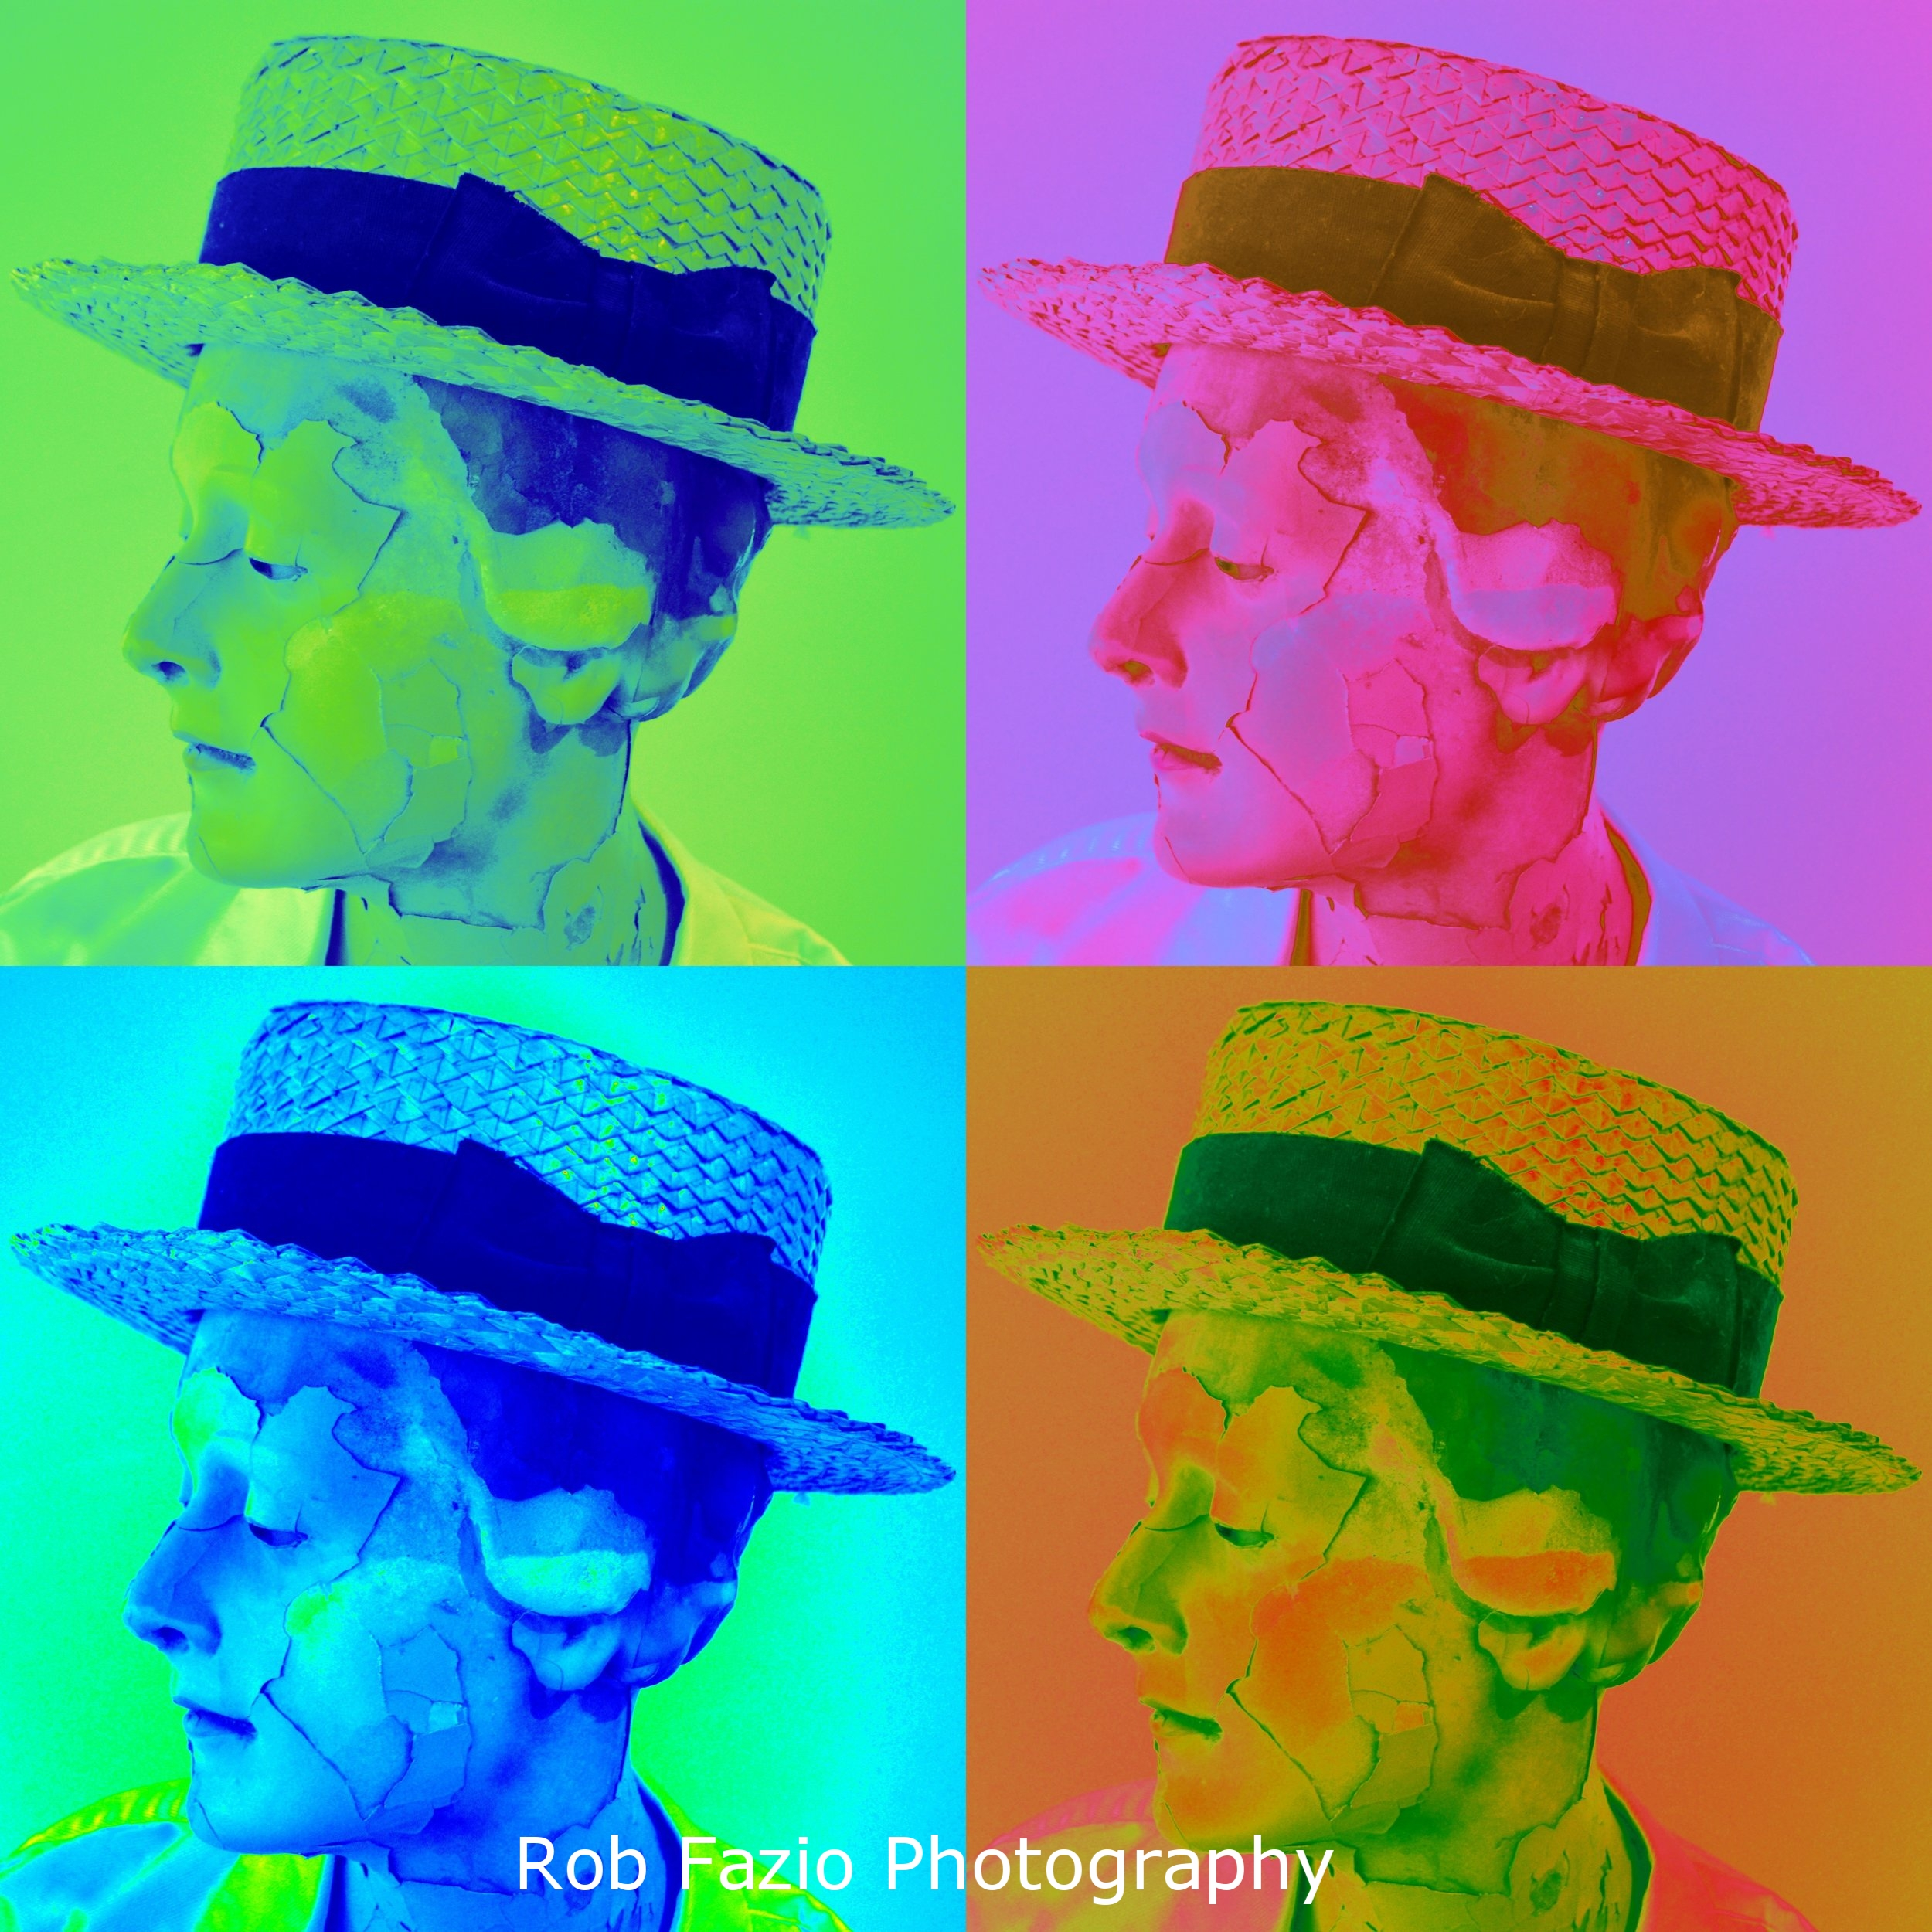 Homage to Warhol